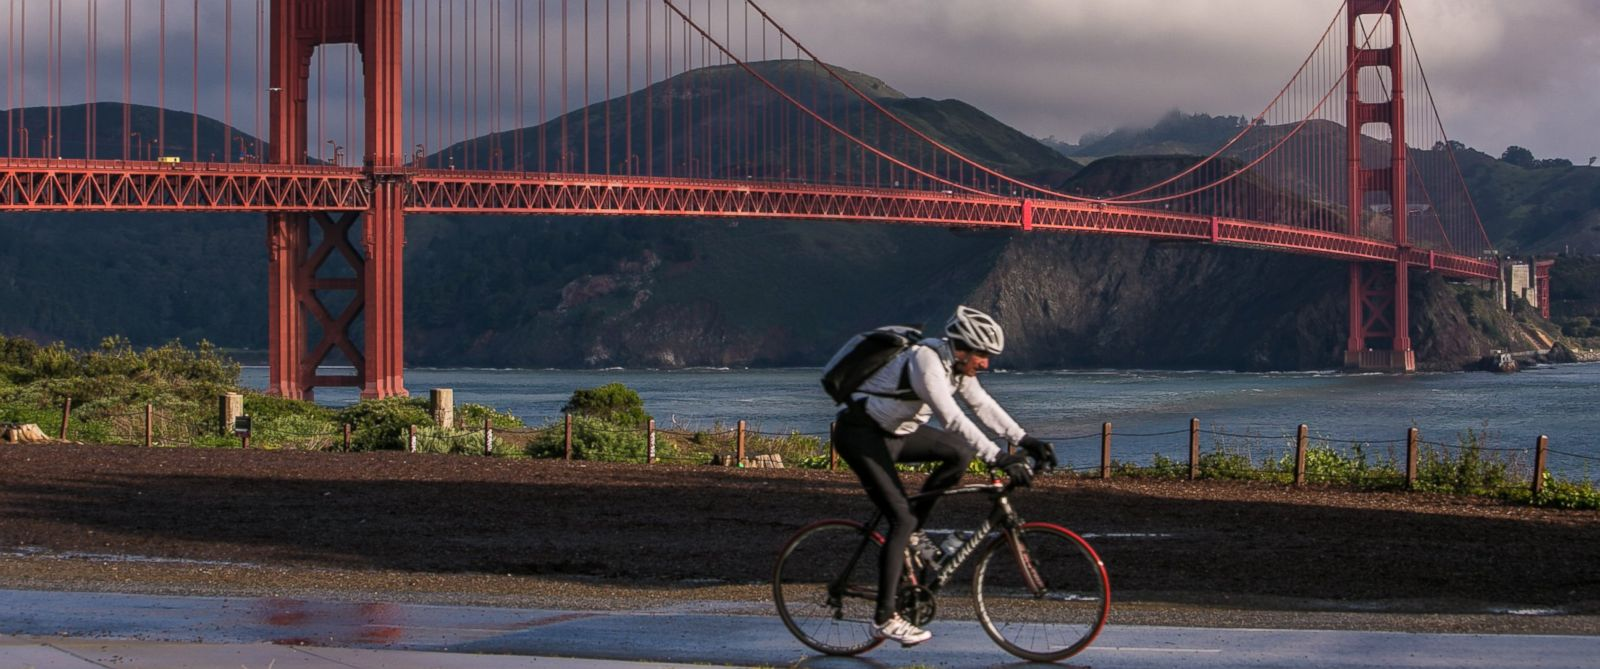 PHOTO: A bicyclist rides along the many bike paths and trails at Golden Gate National Park